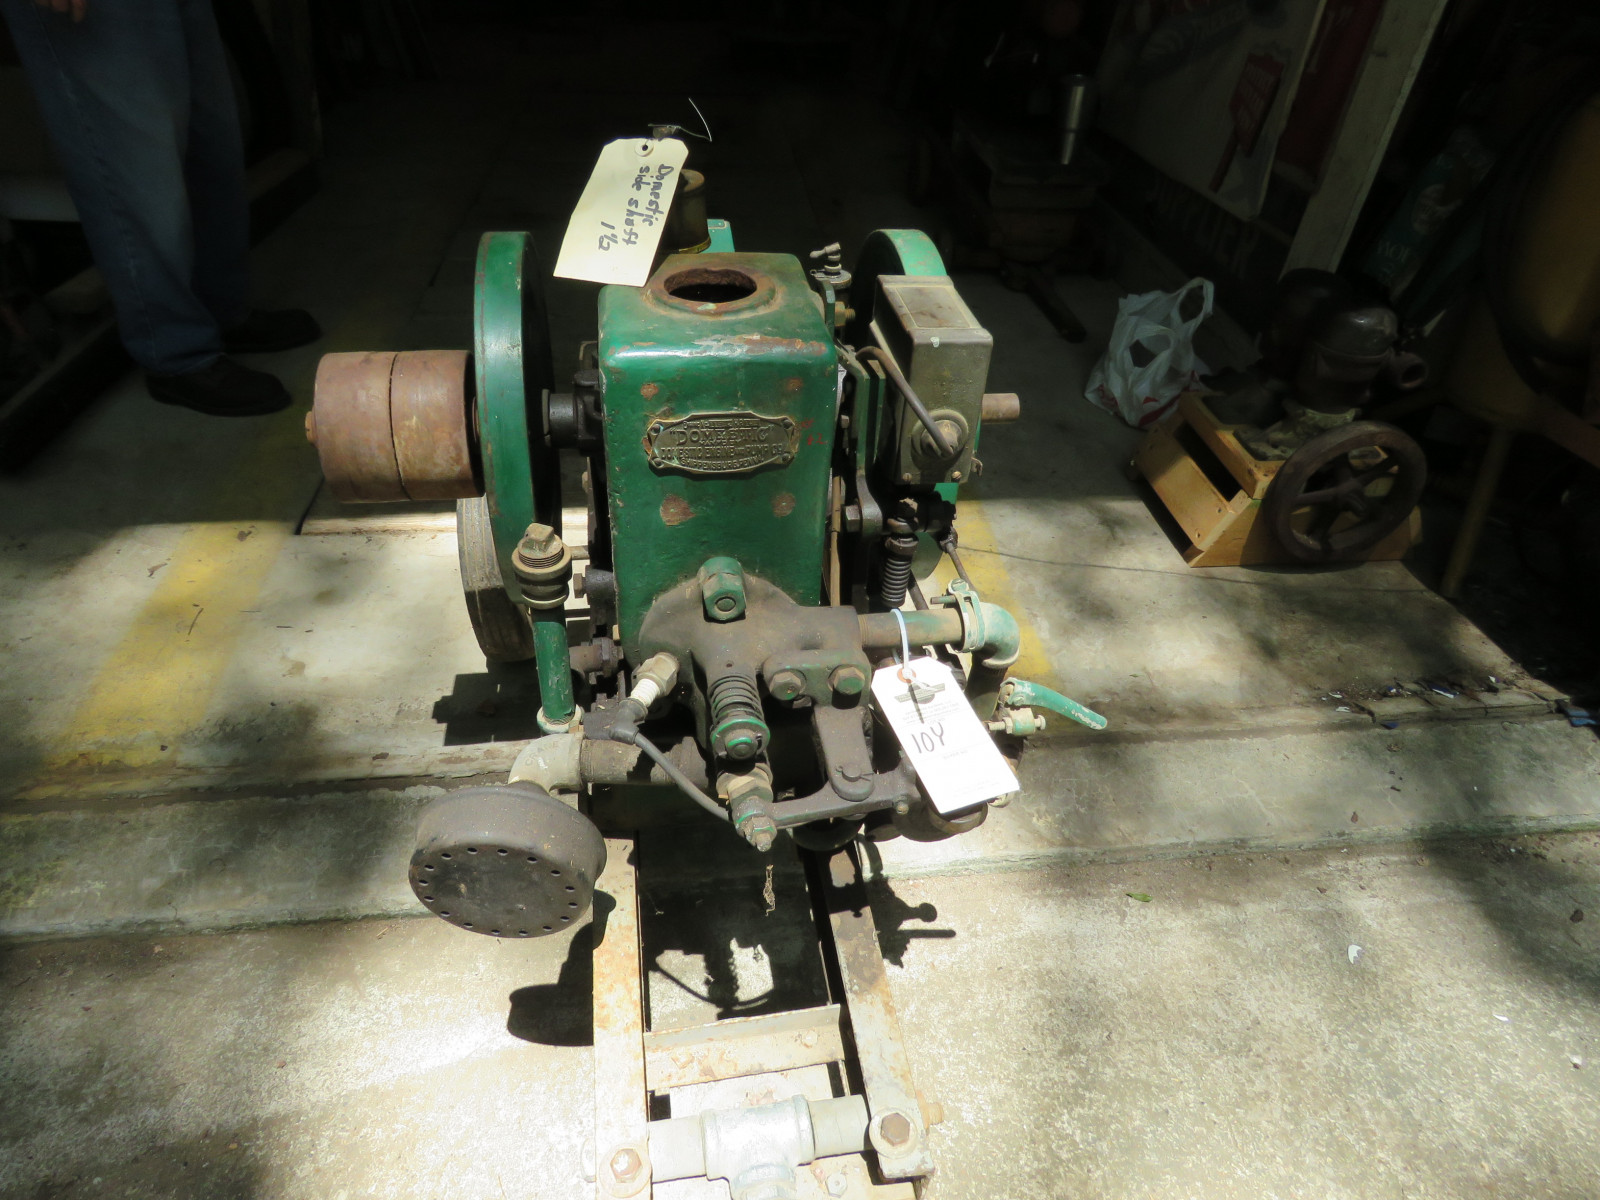 Domestic Side Shaft 1 1/2HP Stationary Gas Engine on Cart - Image 3